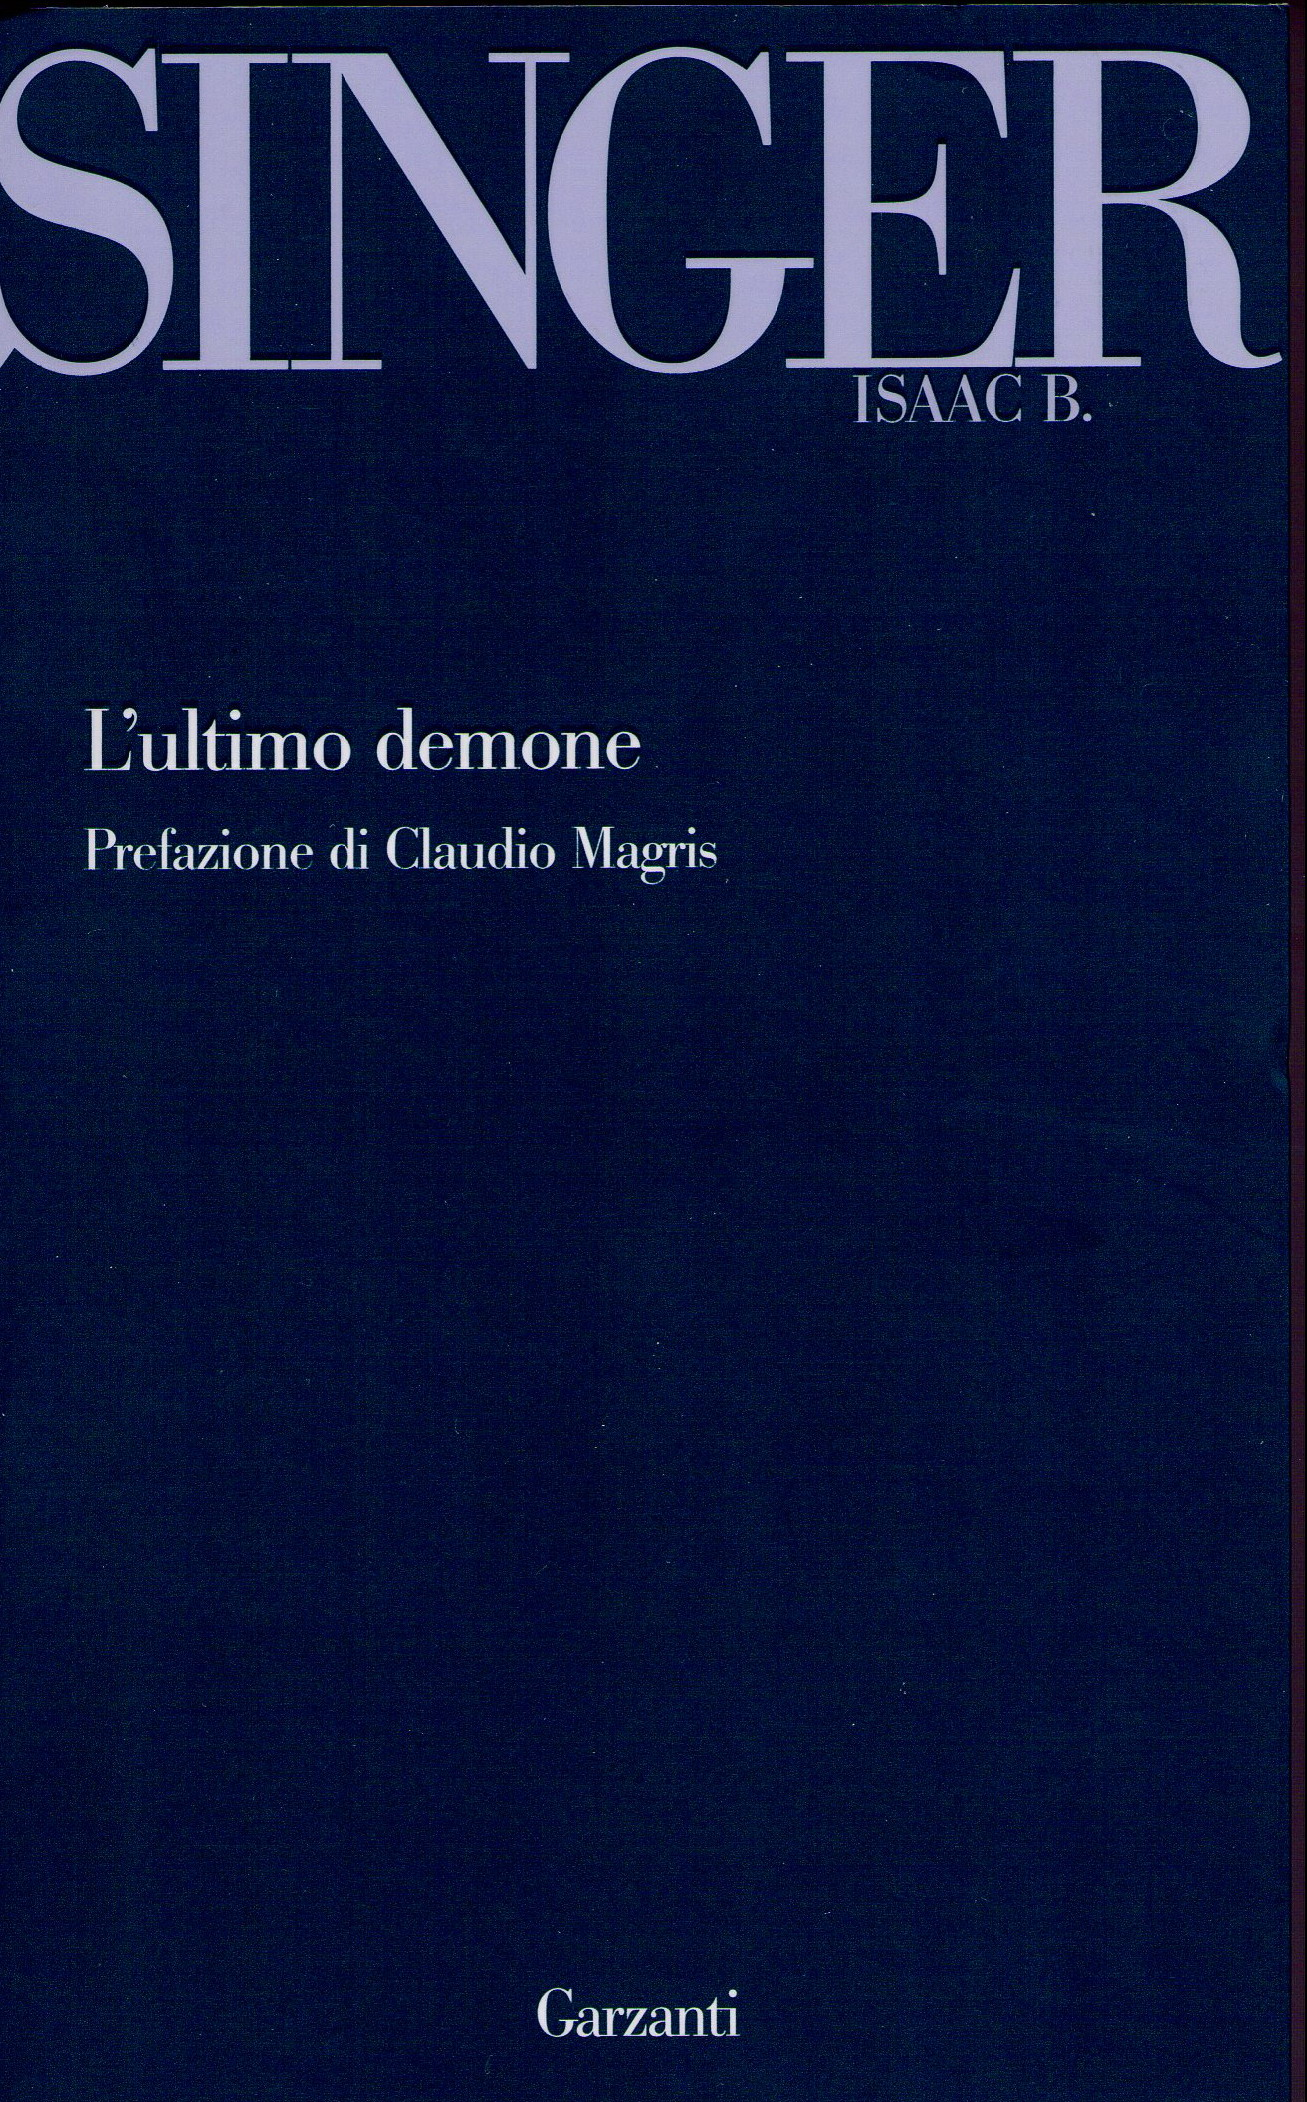 Image of L'ultimo demone